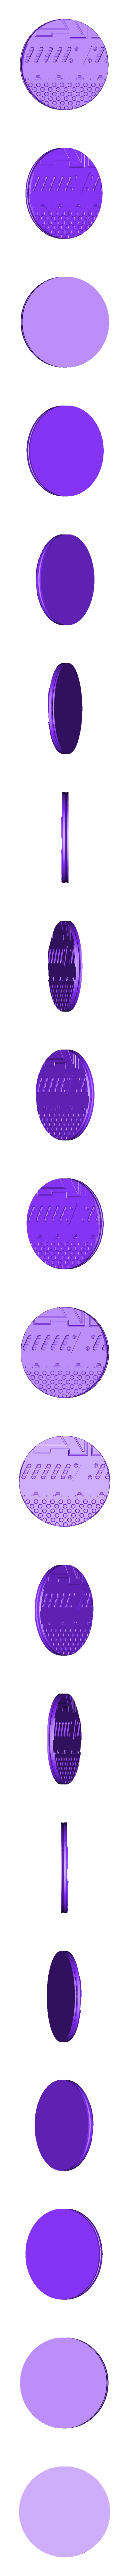 """Cyber_-_2_inch.stl Download free STL file 1"""" & 2' Round Bases - The Ignis Quadrant • 3D printing template, ec3d"""